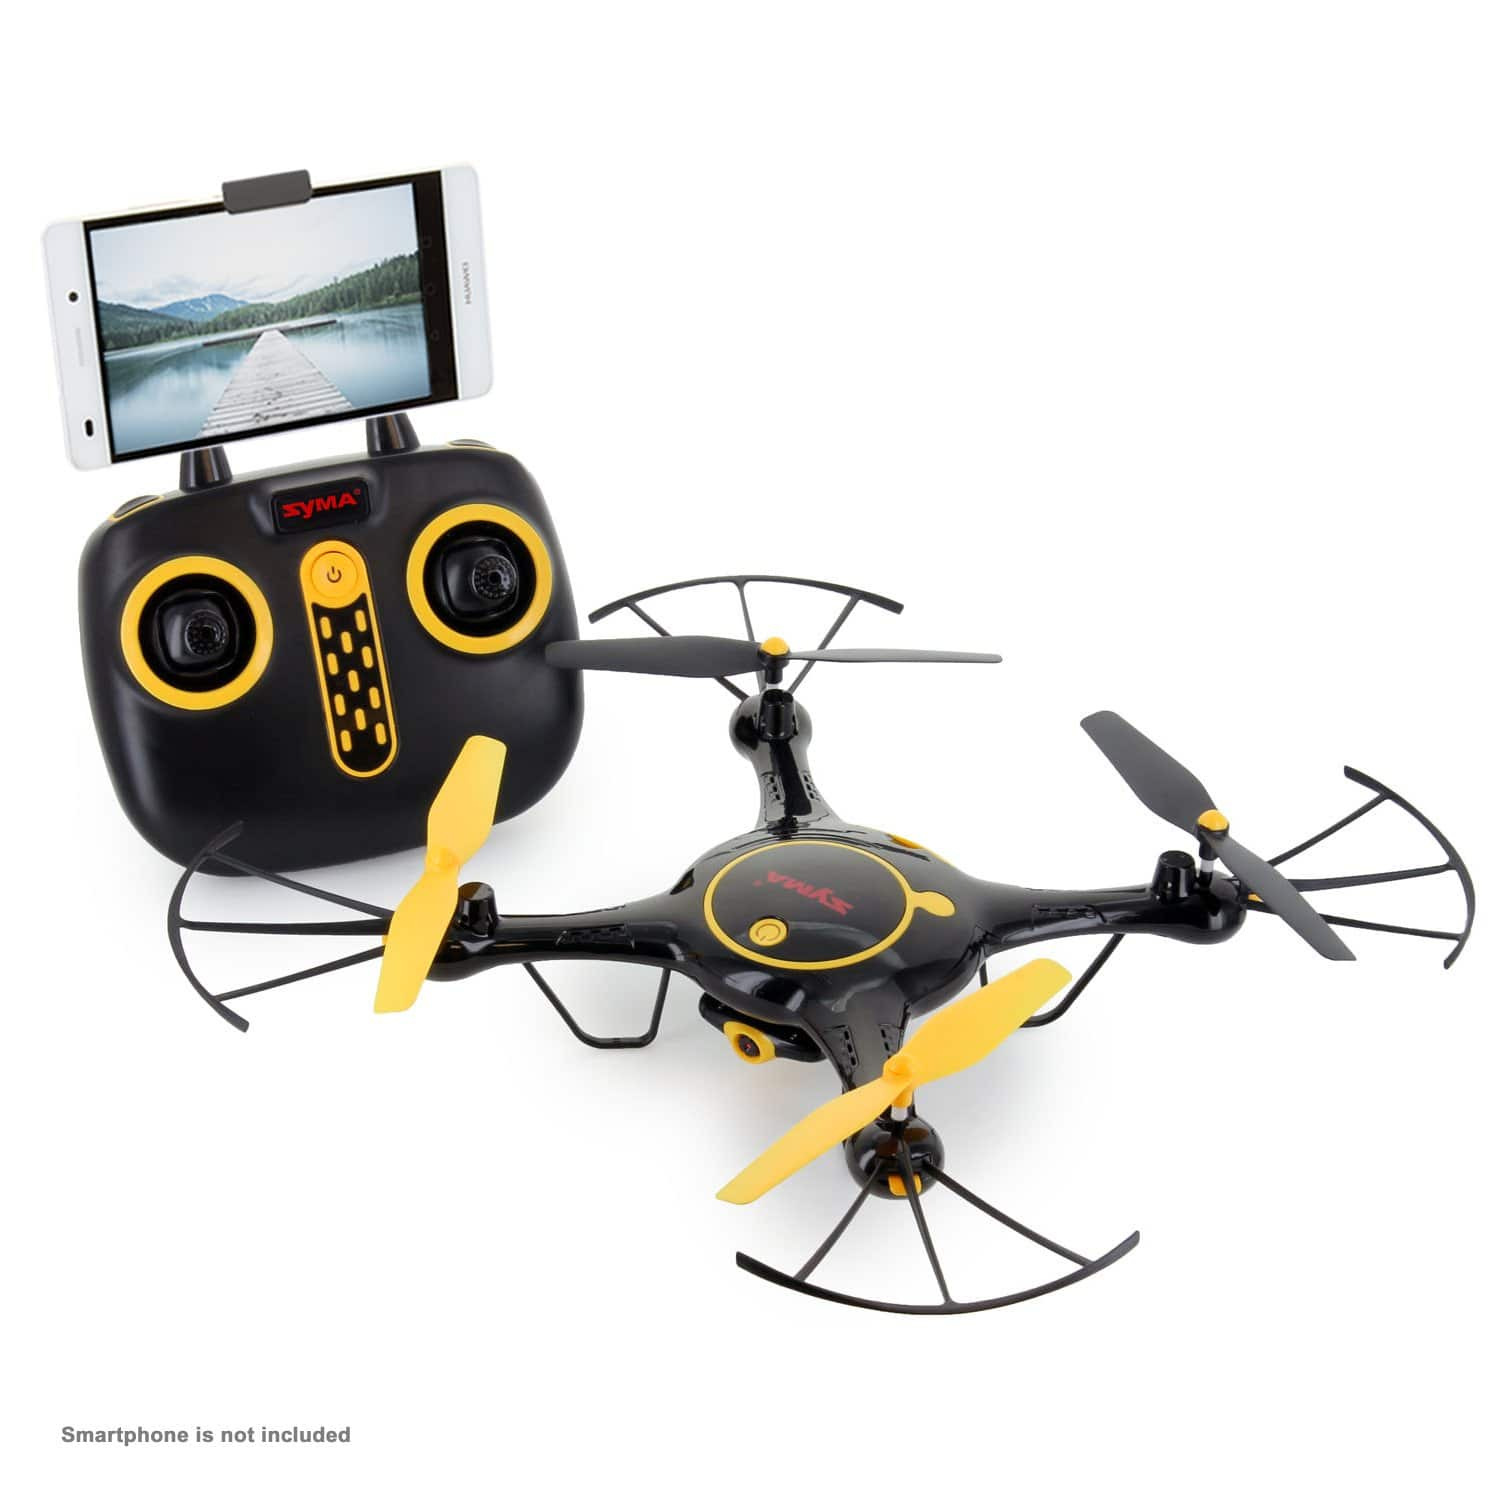 Tenergy Syma X5UW WiFi FPV Drone 720P HD Camera with 2 Batteries (Exclusive Black Yellow Color) - $19.99 + Free Shipping